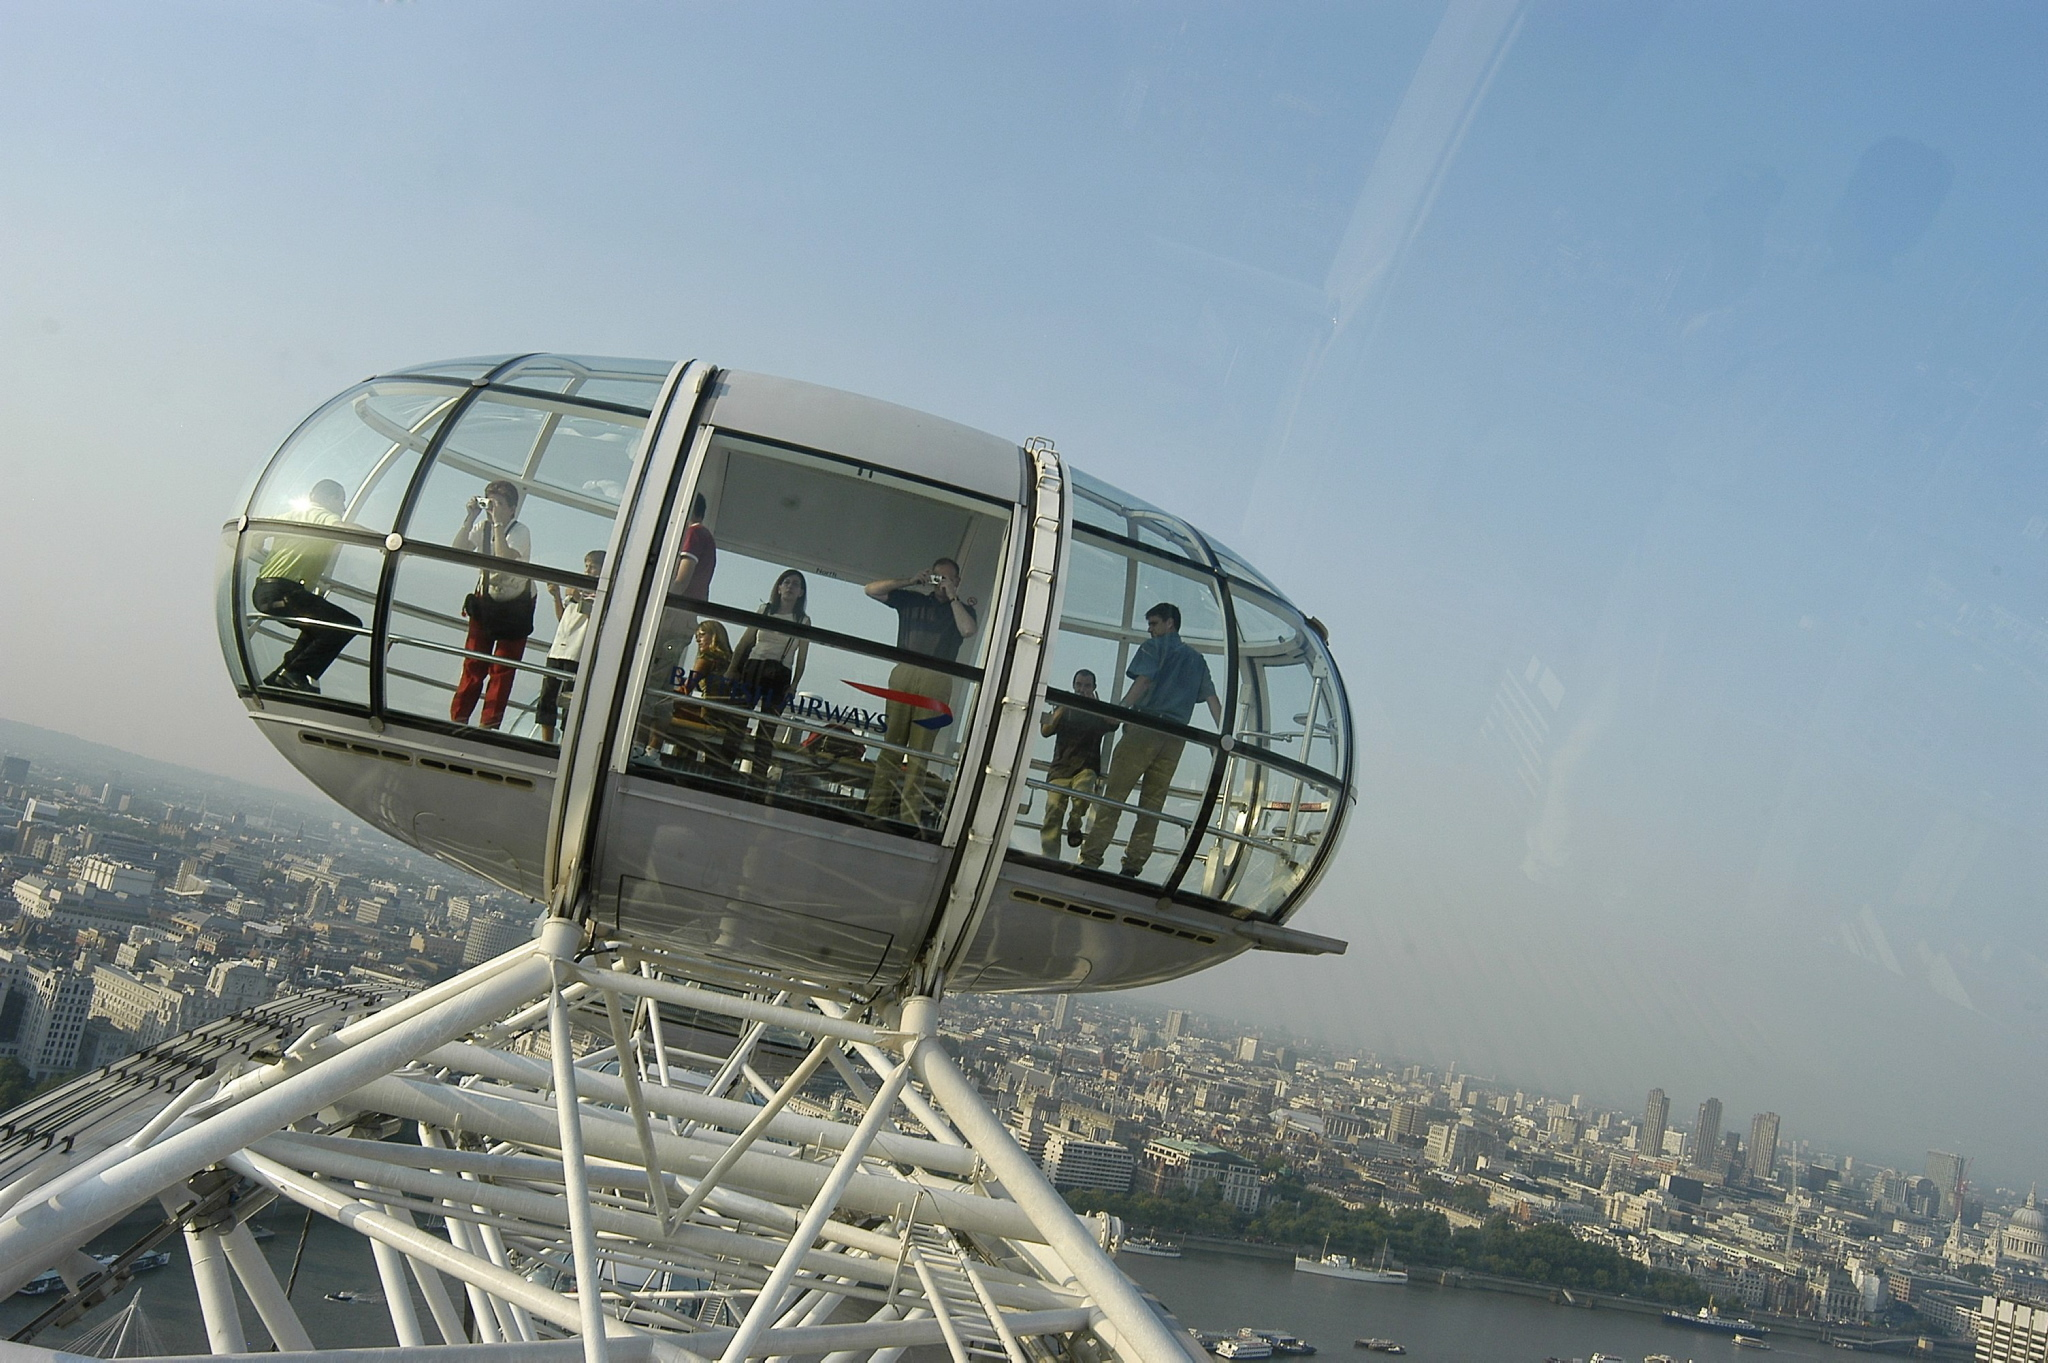 101 Things To Do in London: London Eye